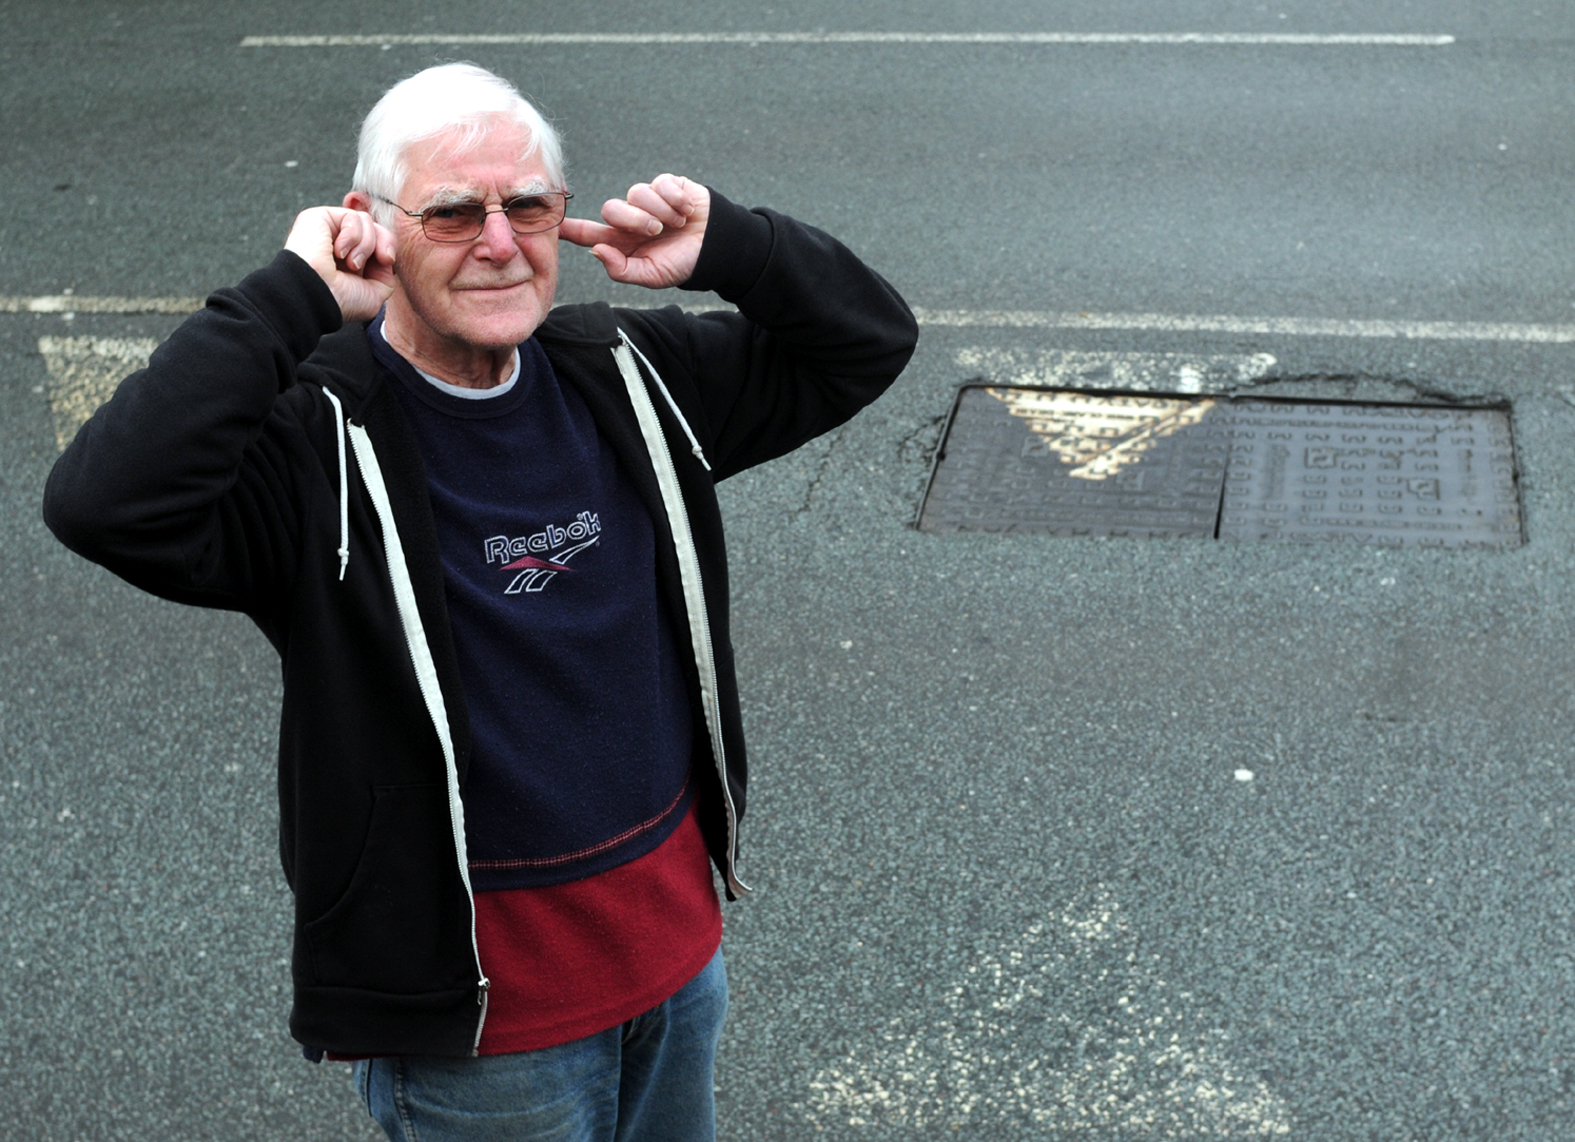 Edward Corley next to the broken manhole cover on Bradshaw Brow.